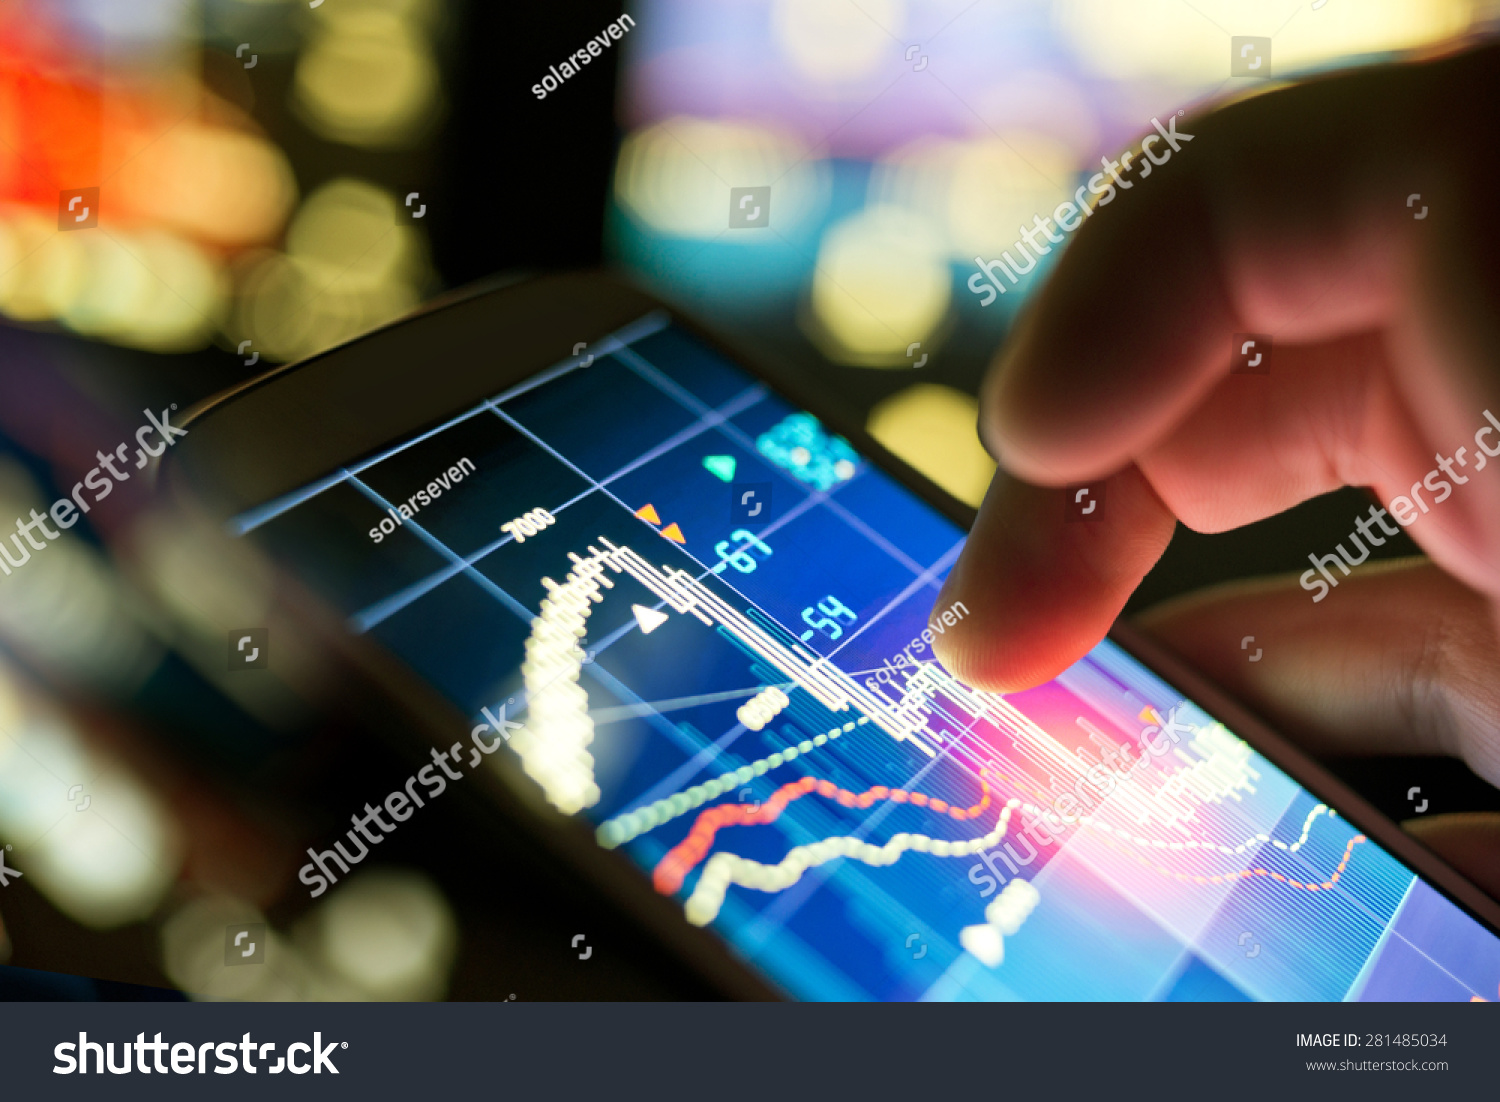 A businessman using a mobile phone to check stock market data. #281485034